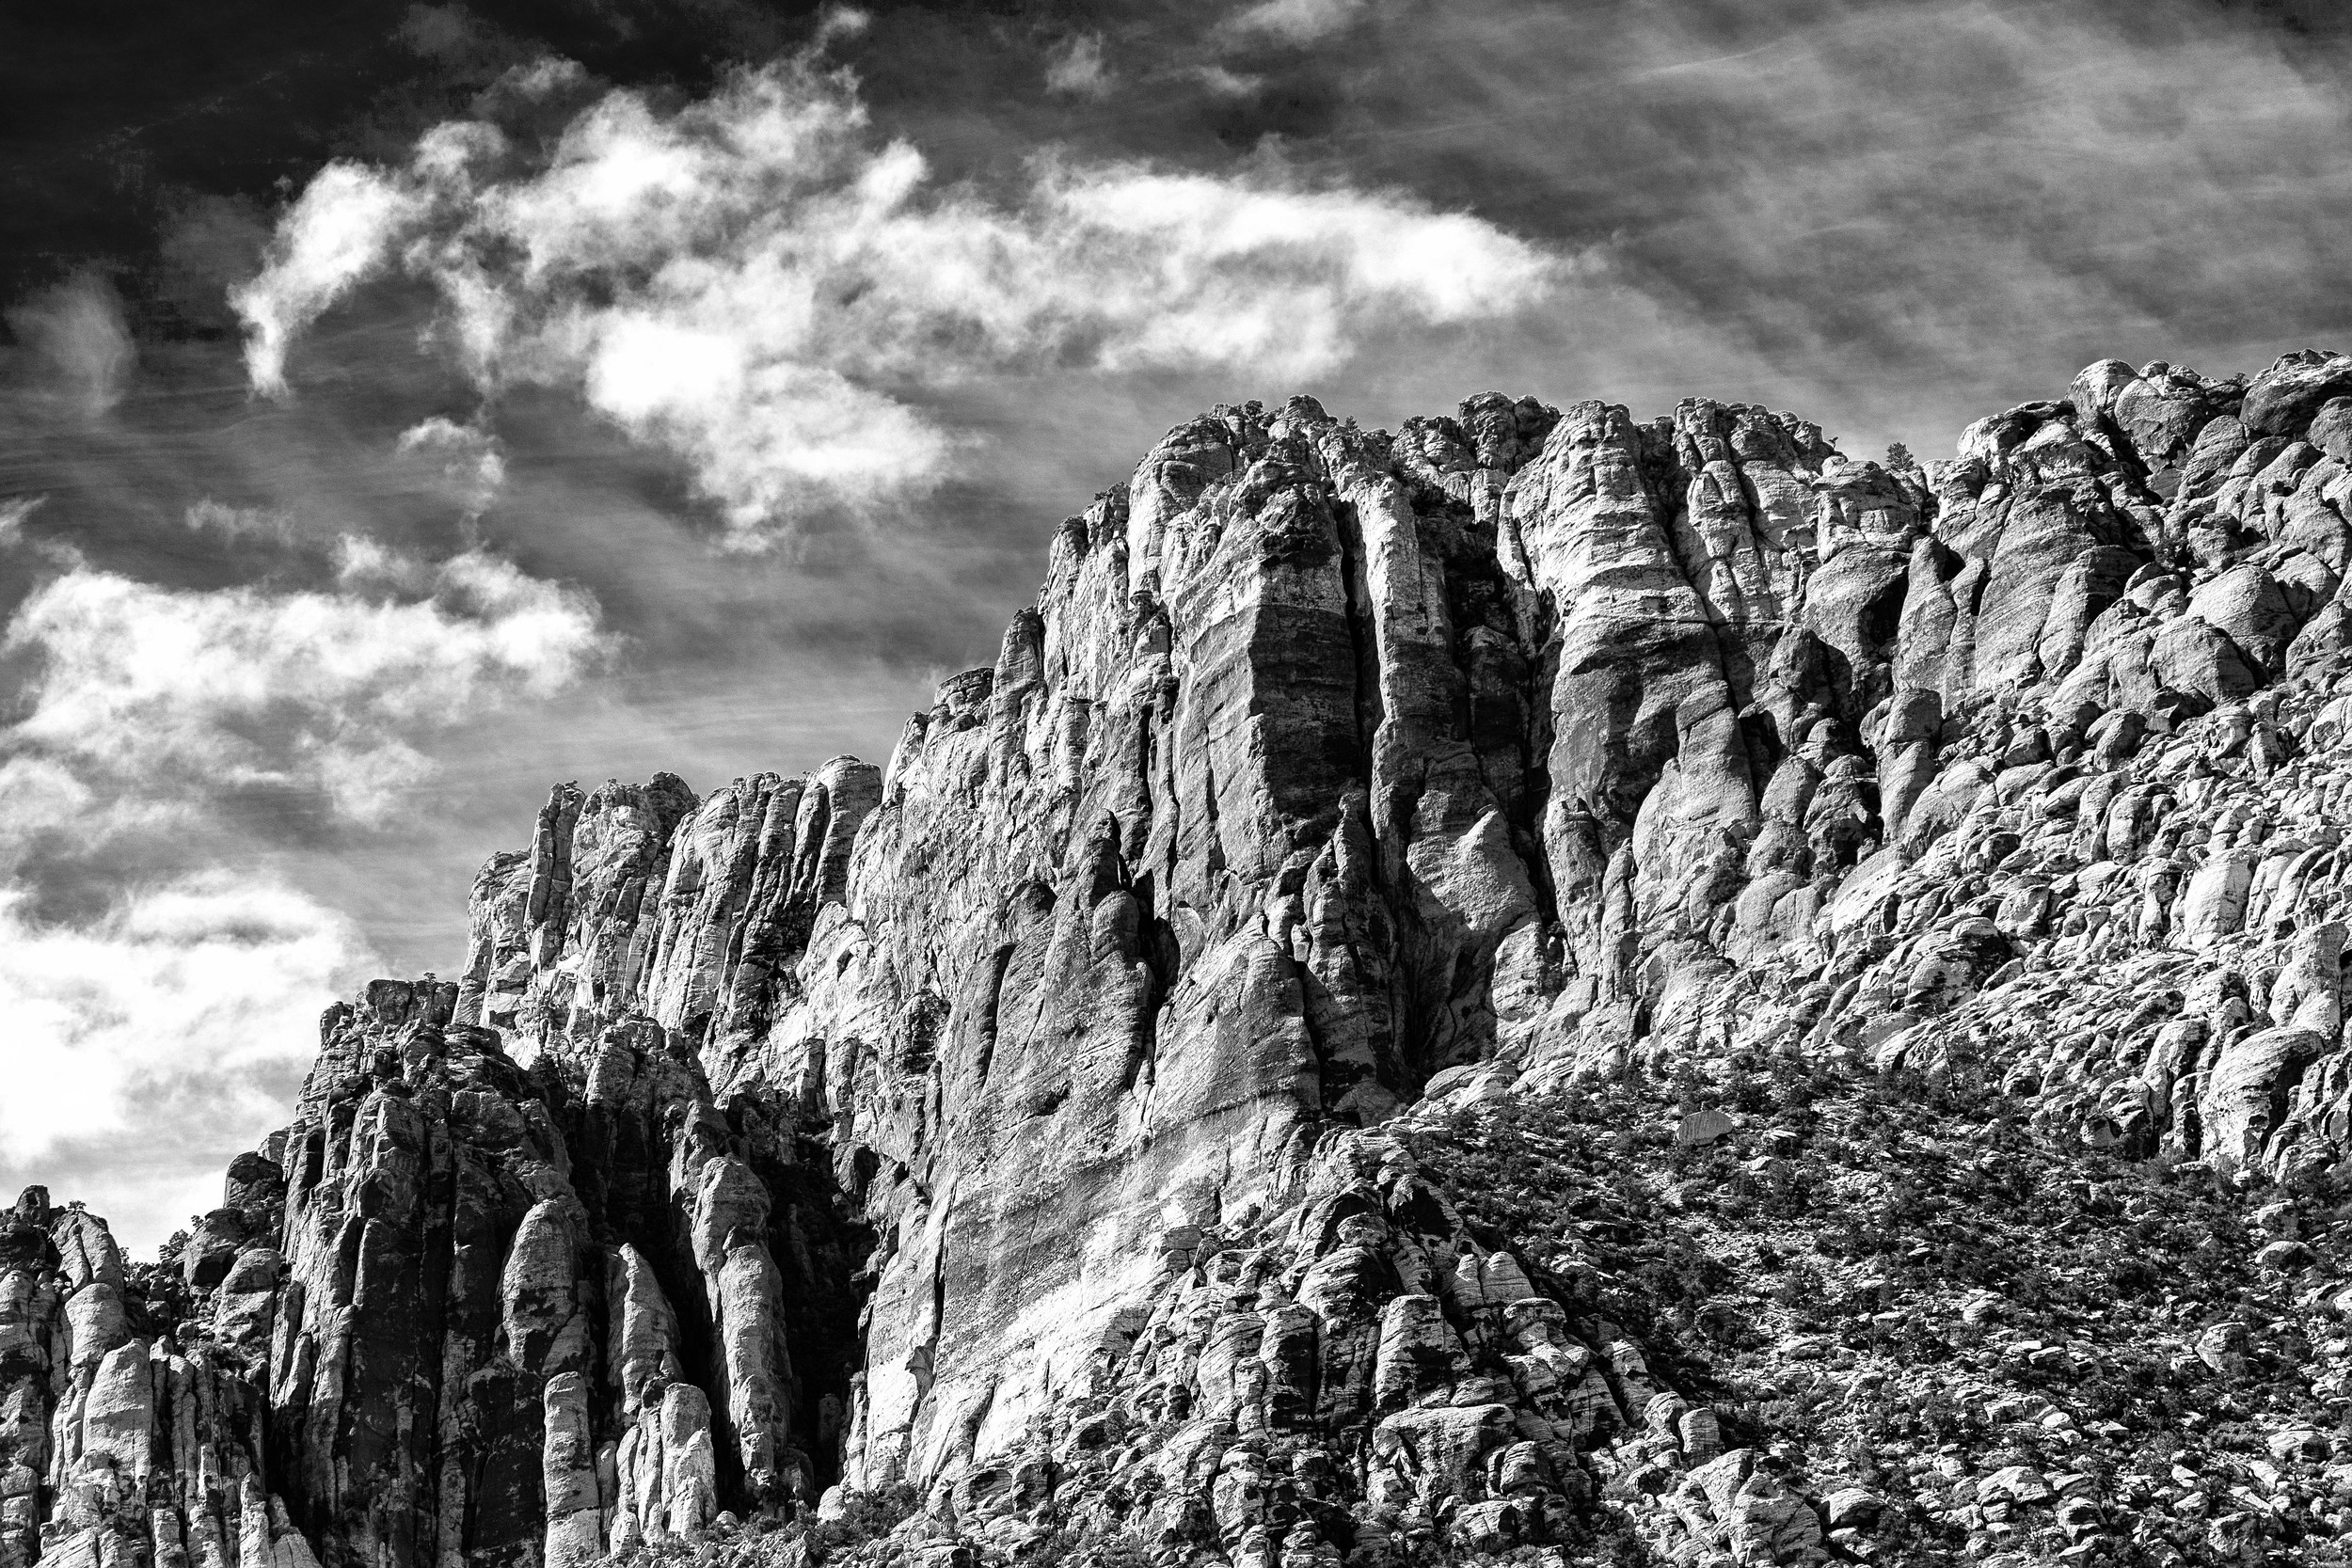 Red Rock Canyon near Las Vegas. Photo by betchel-photography.com